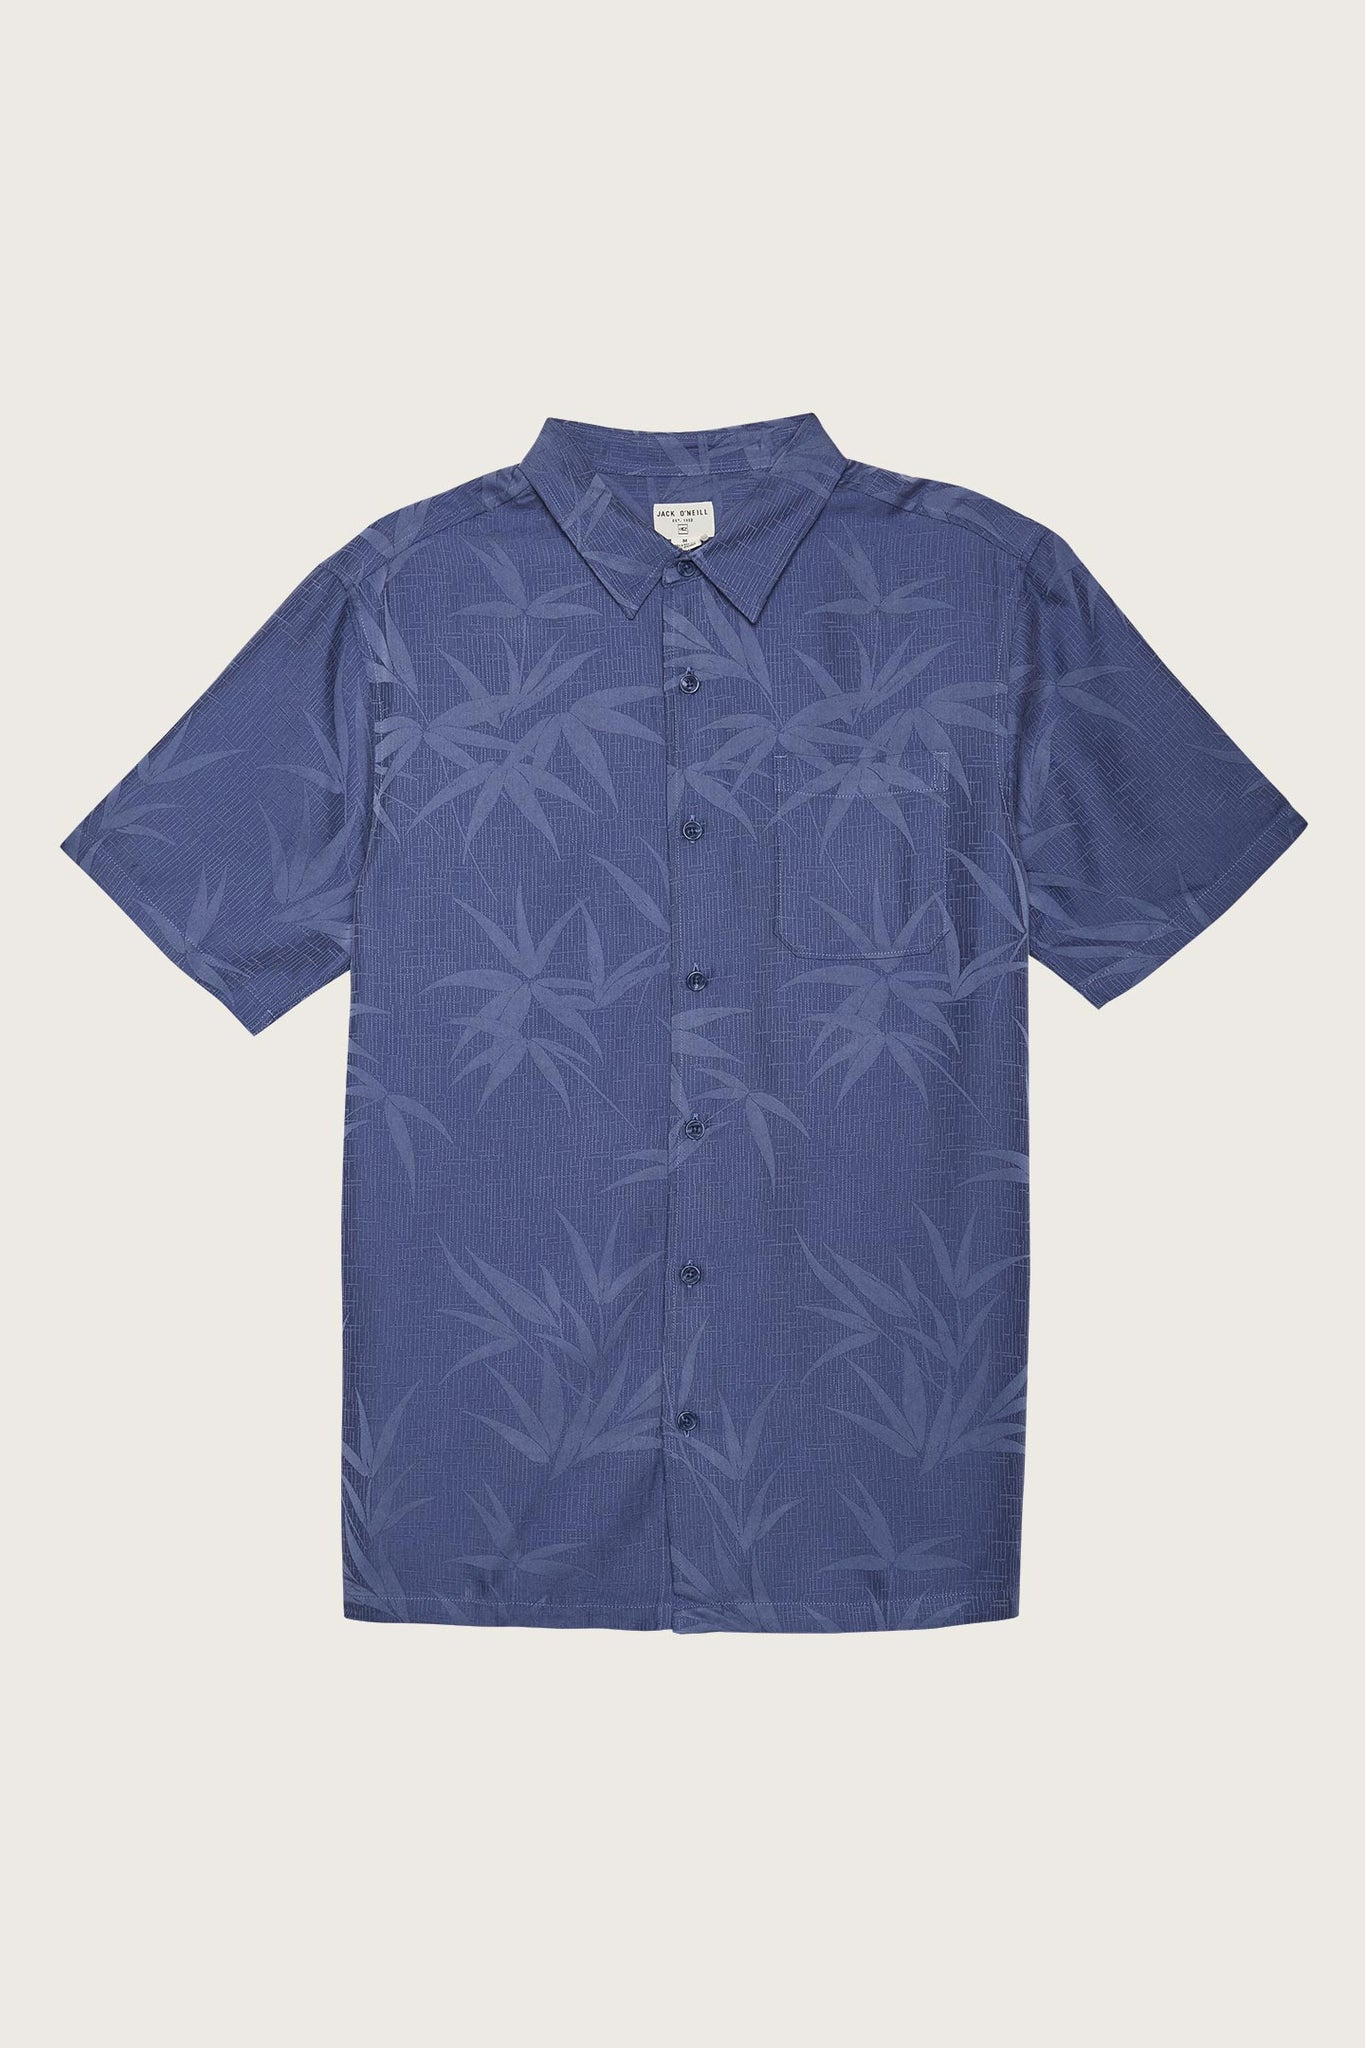 Jack O'Neill Bamboo Brush Shirt - Pacific | O'Neill